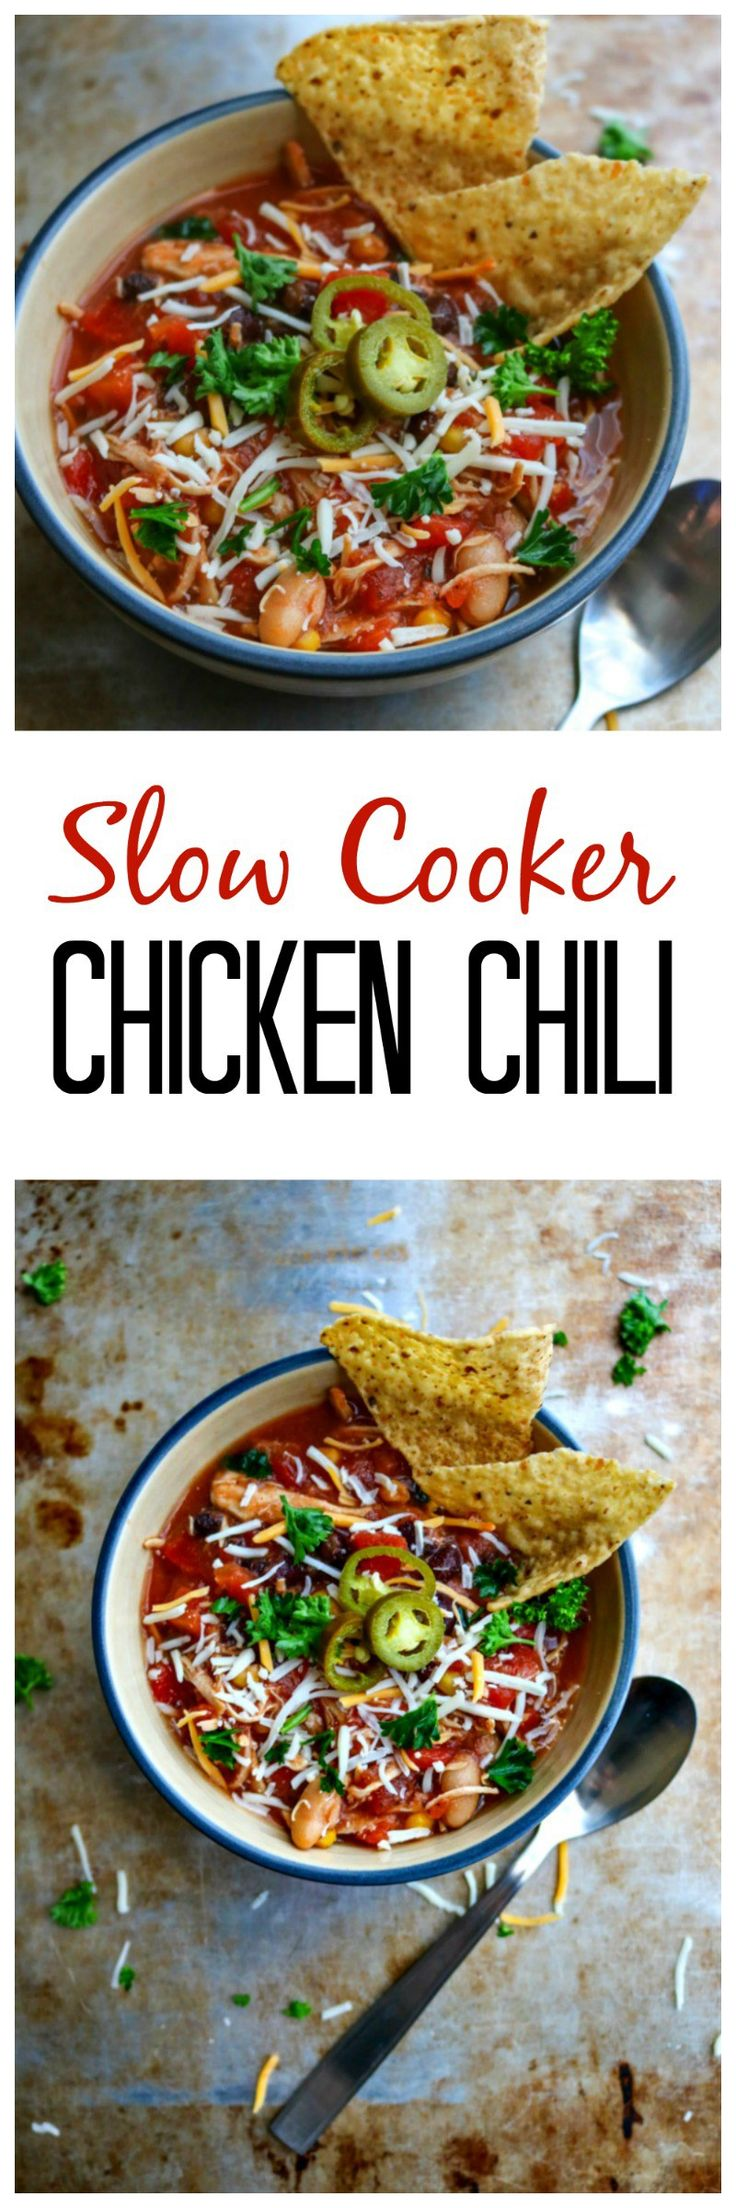 Crockpot Chicken Chili: A truly dump and forget about it meal that is full of southwestern flavors and is a perfect cross between a hearty chili and filling soup.